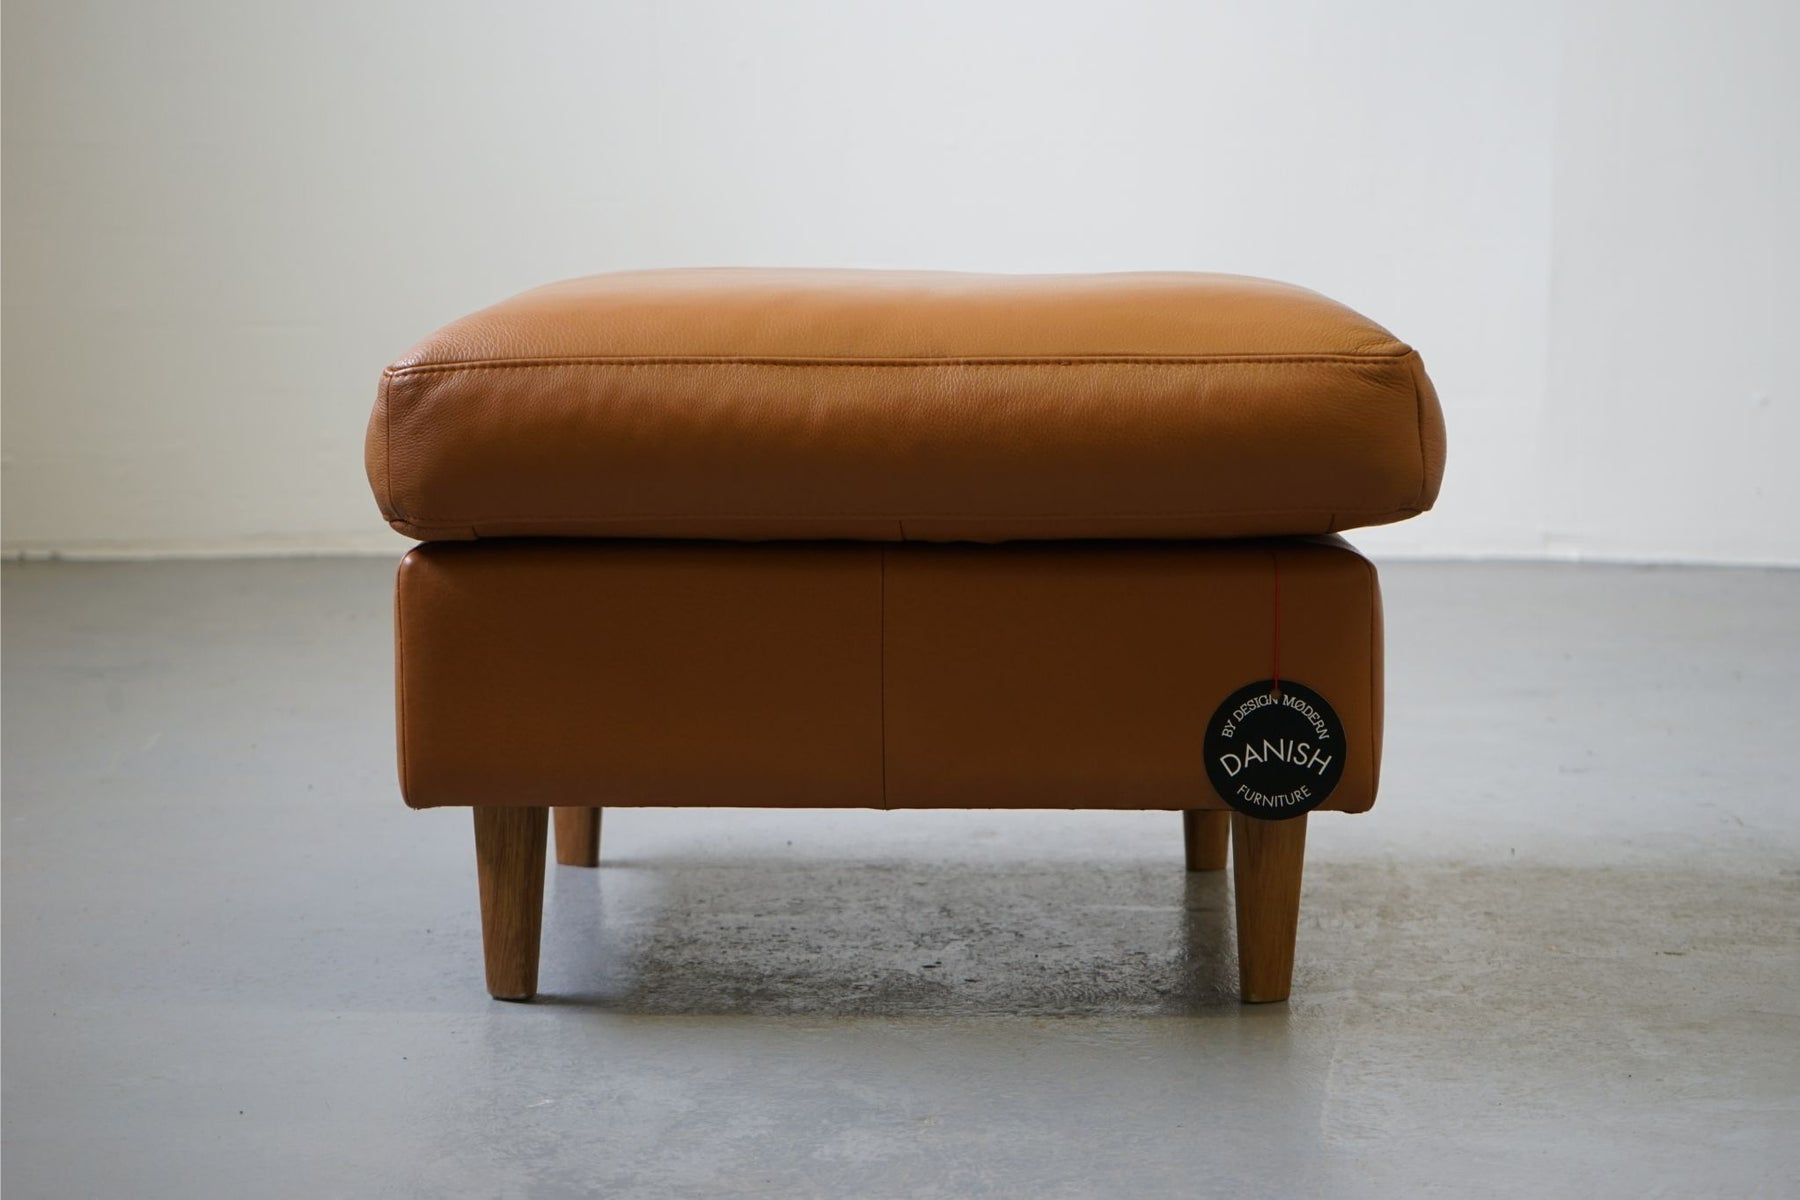 A Vintage Design Leather & Oak Footstool - (313-006.2)